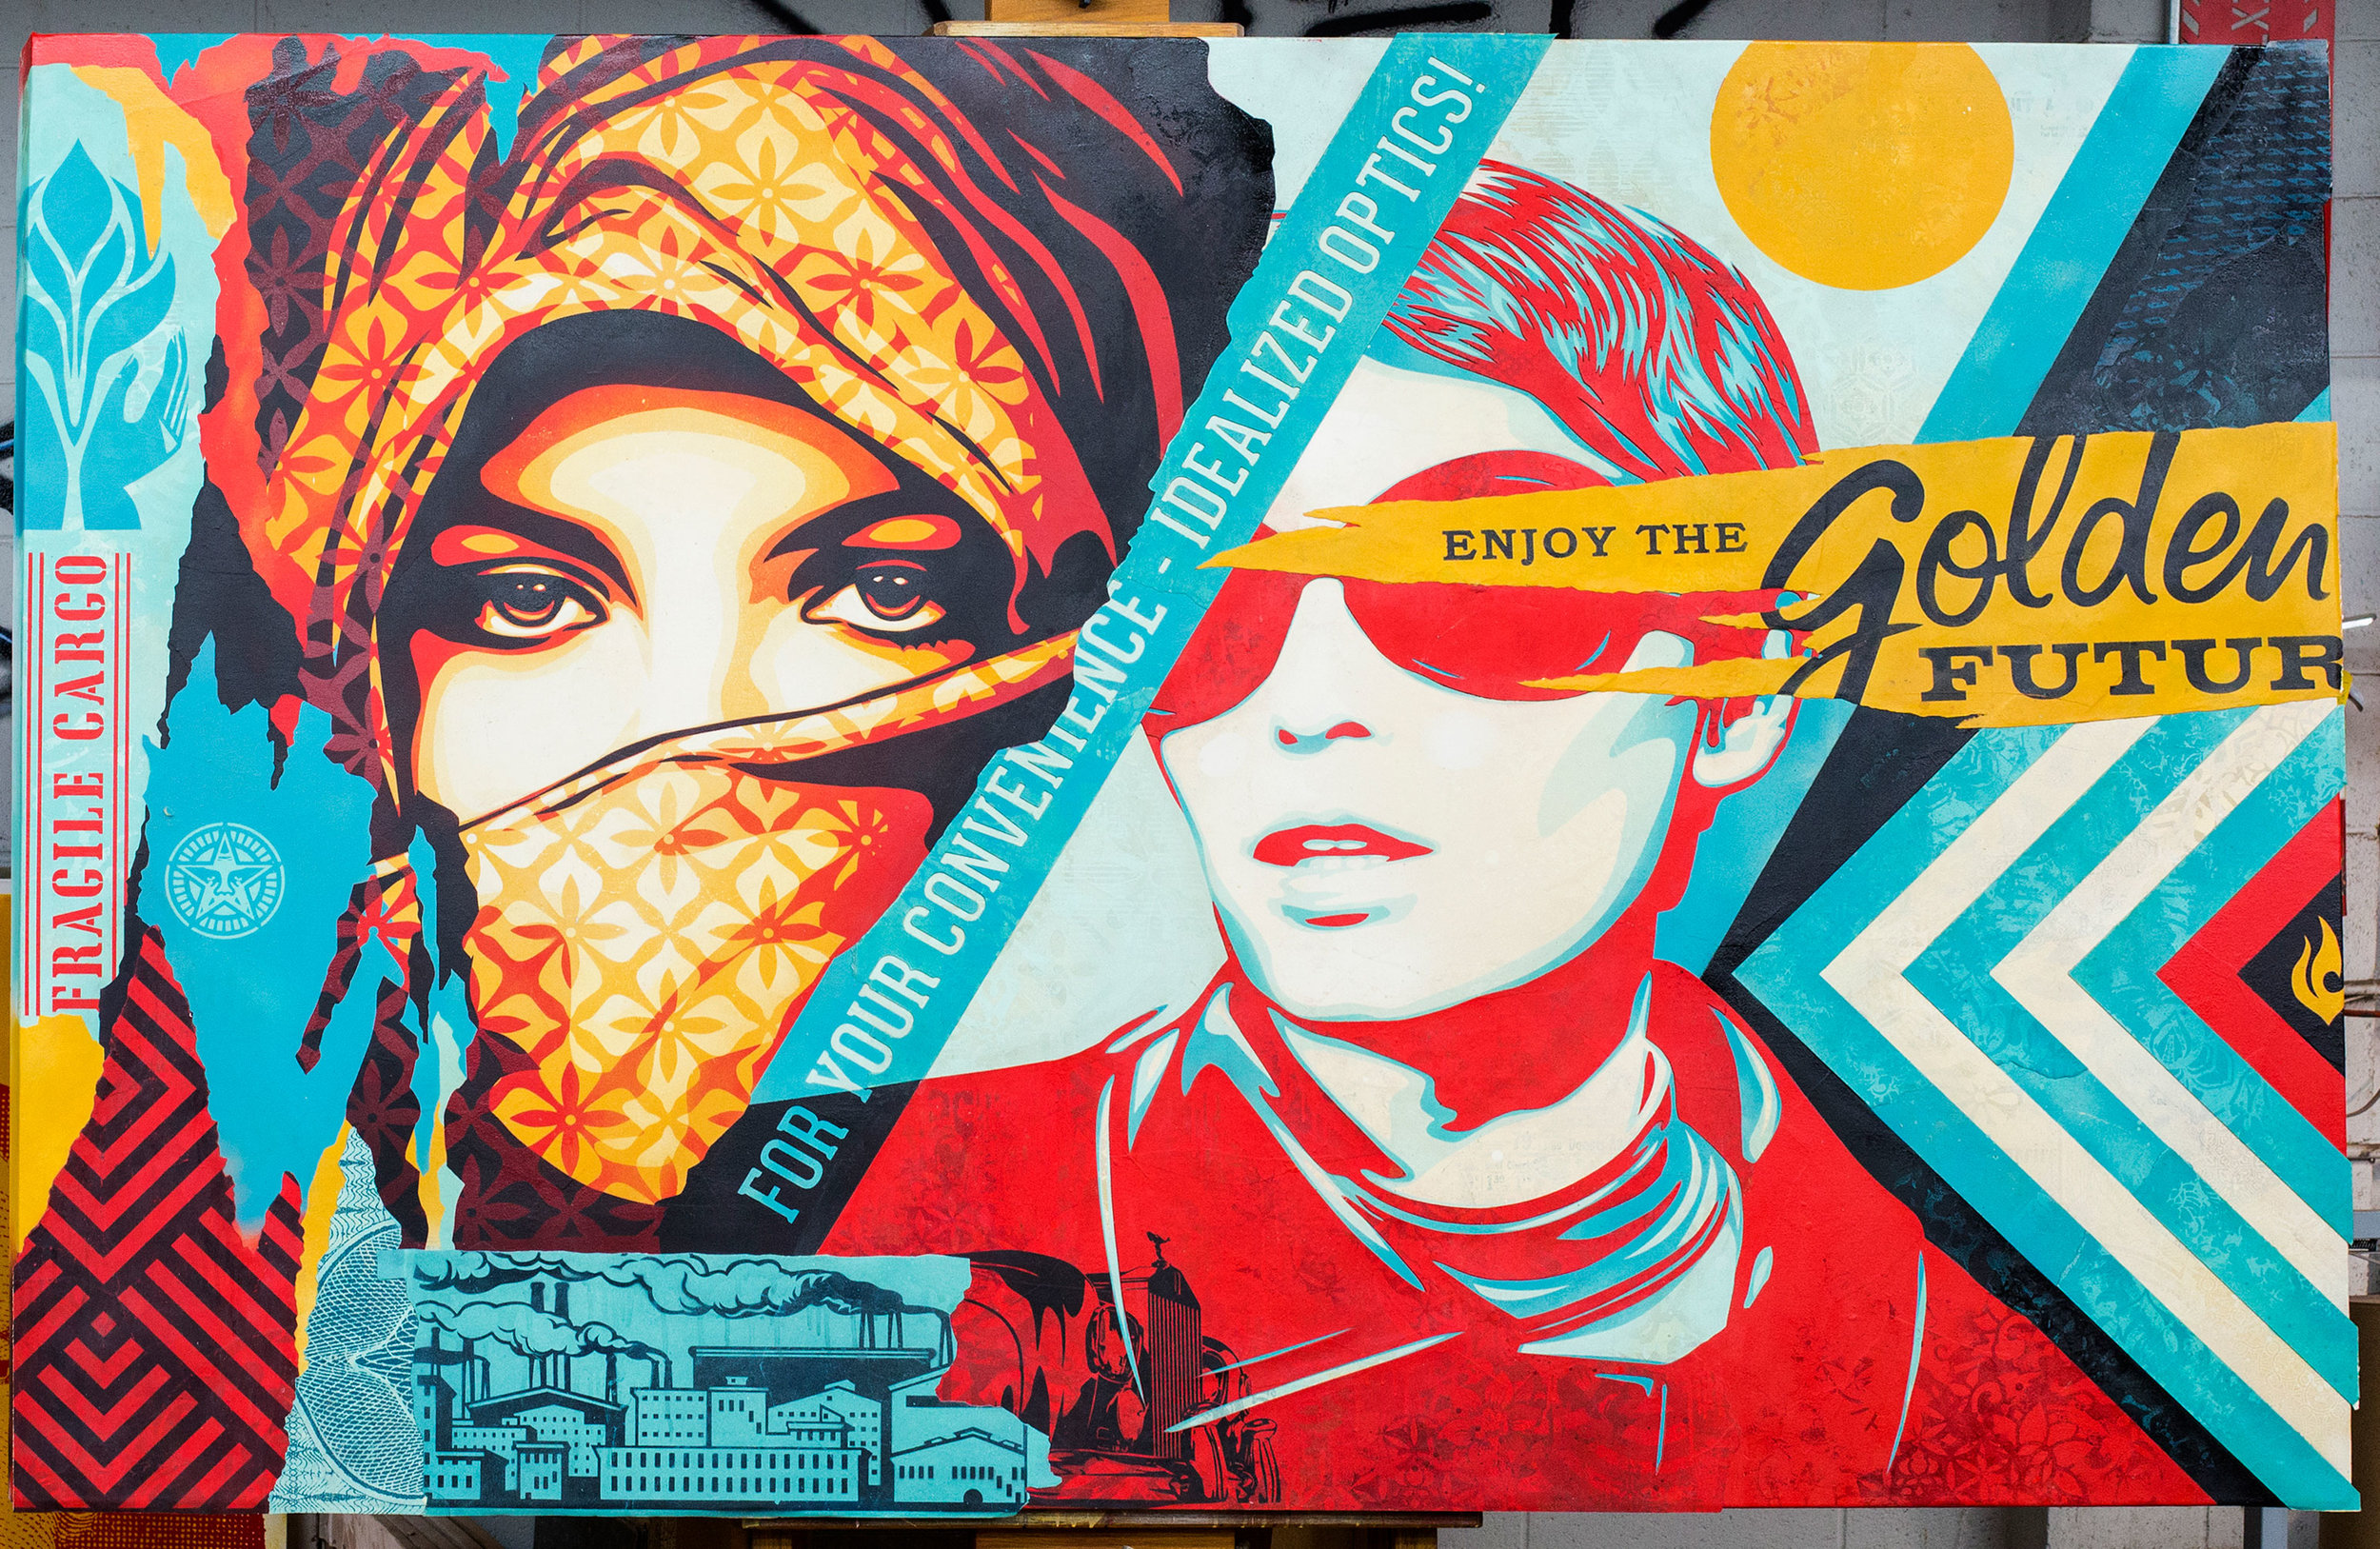 """SHEPARD FAIREY. """"GOLDEN FUTURE"""" (2018). MIXED MEDIA (STENCIL, SILKSCREEN, AND COLLAGE) ON CANVAS. 88 X 58 IN."""